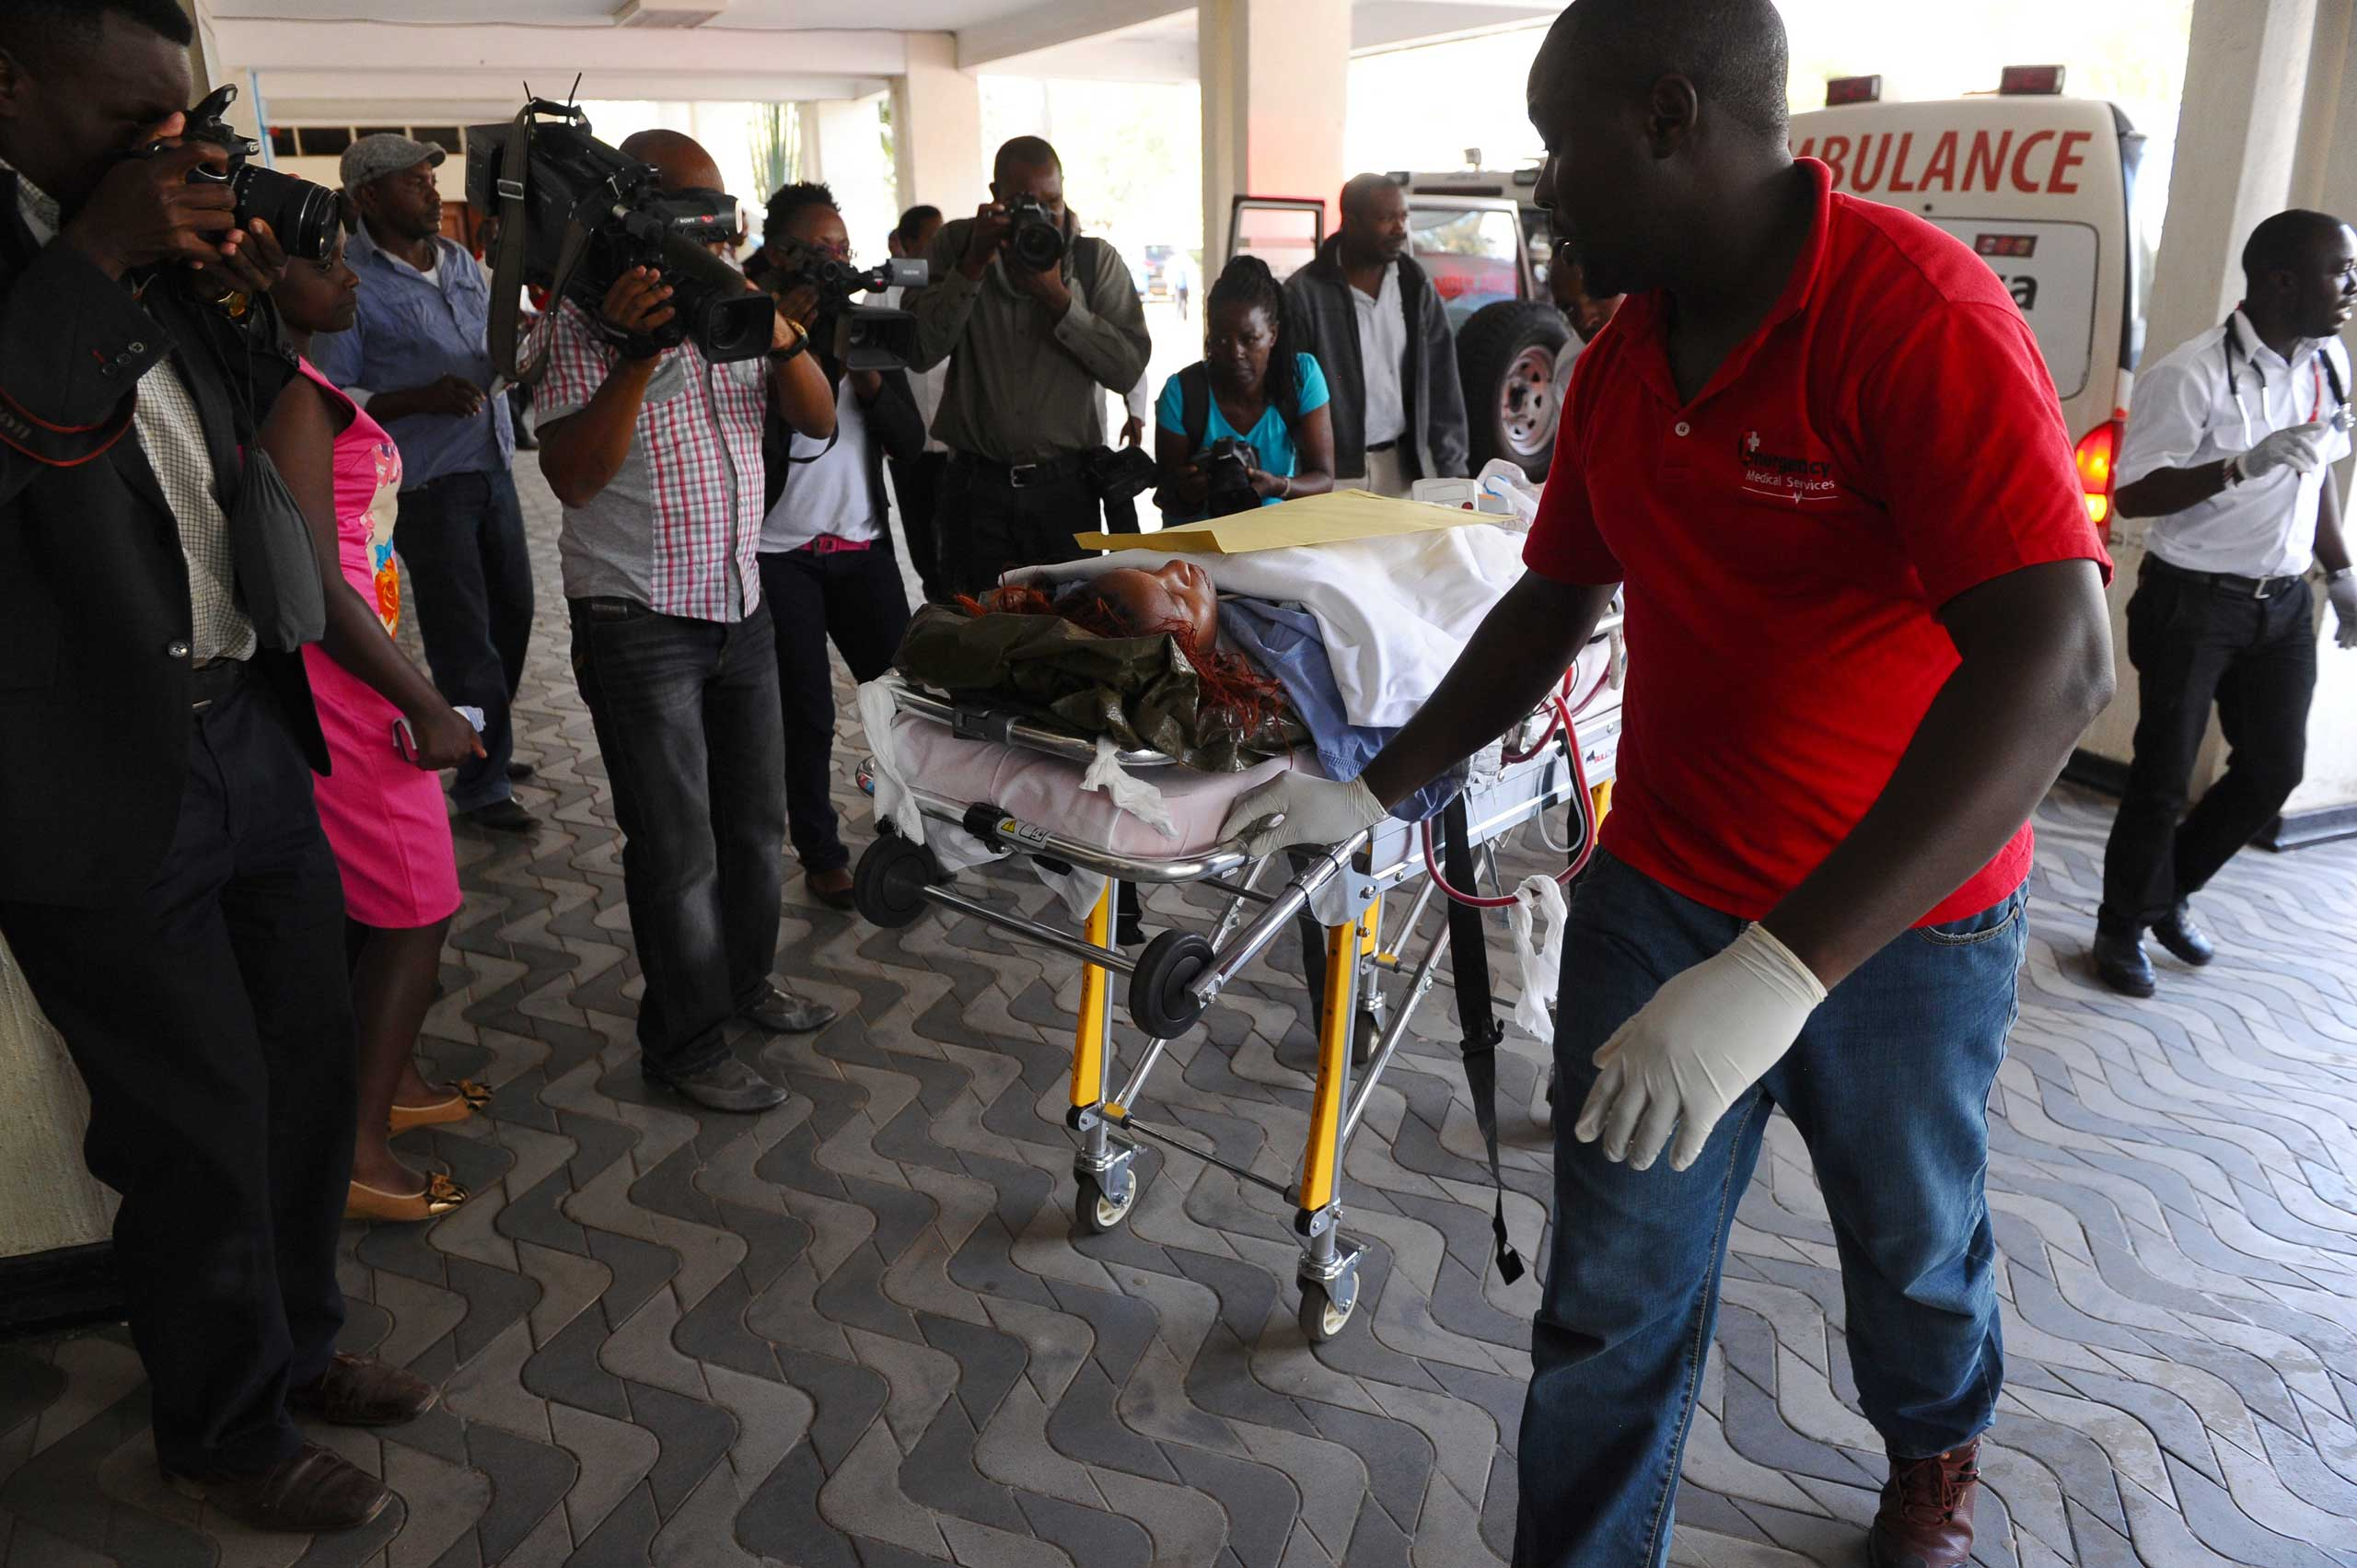 Medics help an injured person at Kenyatta National Hospital in Nairobi after being airlifted from the site of an attack at Garissa University College, in northeastern Kenya, on April 2, 2015.